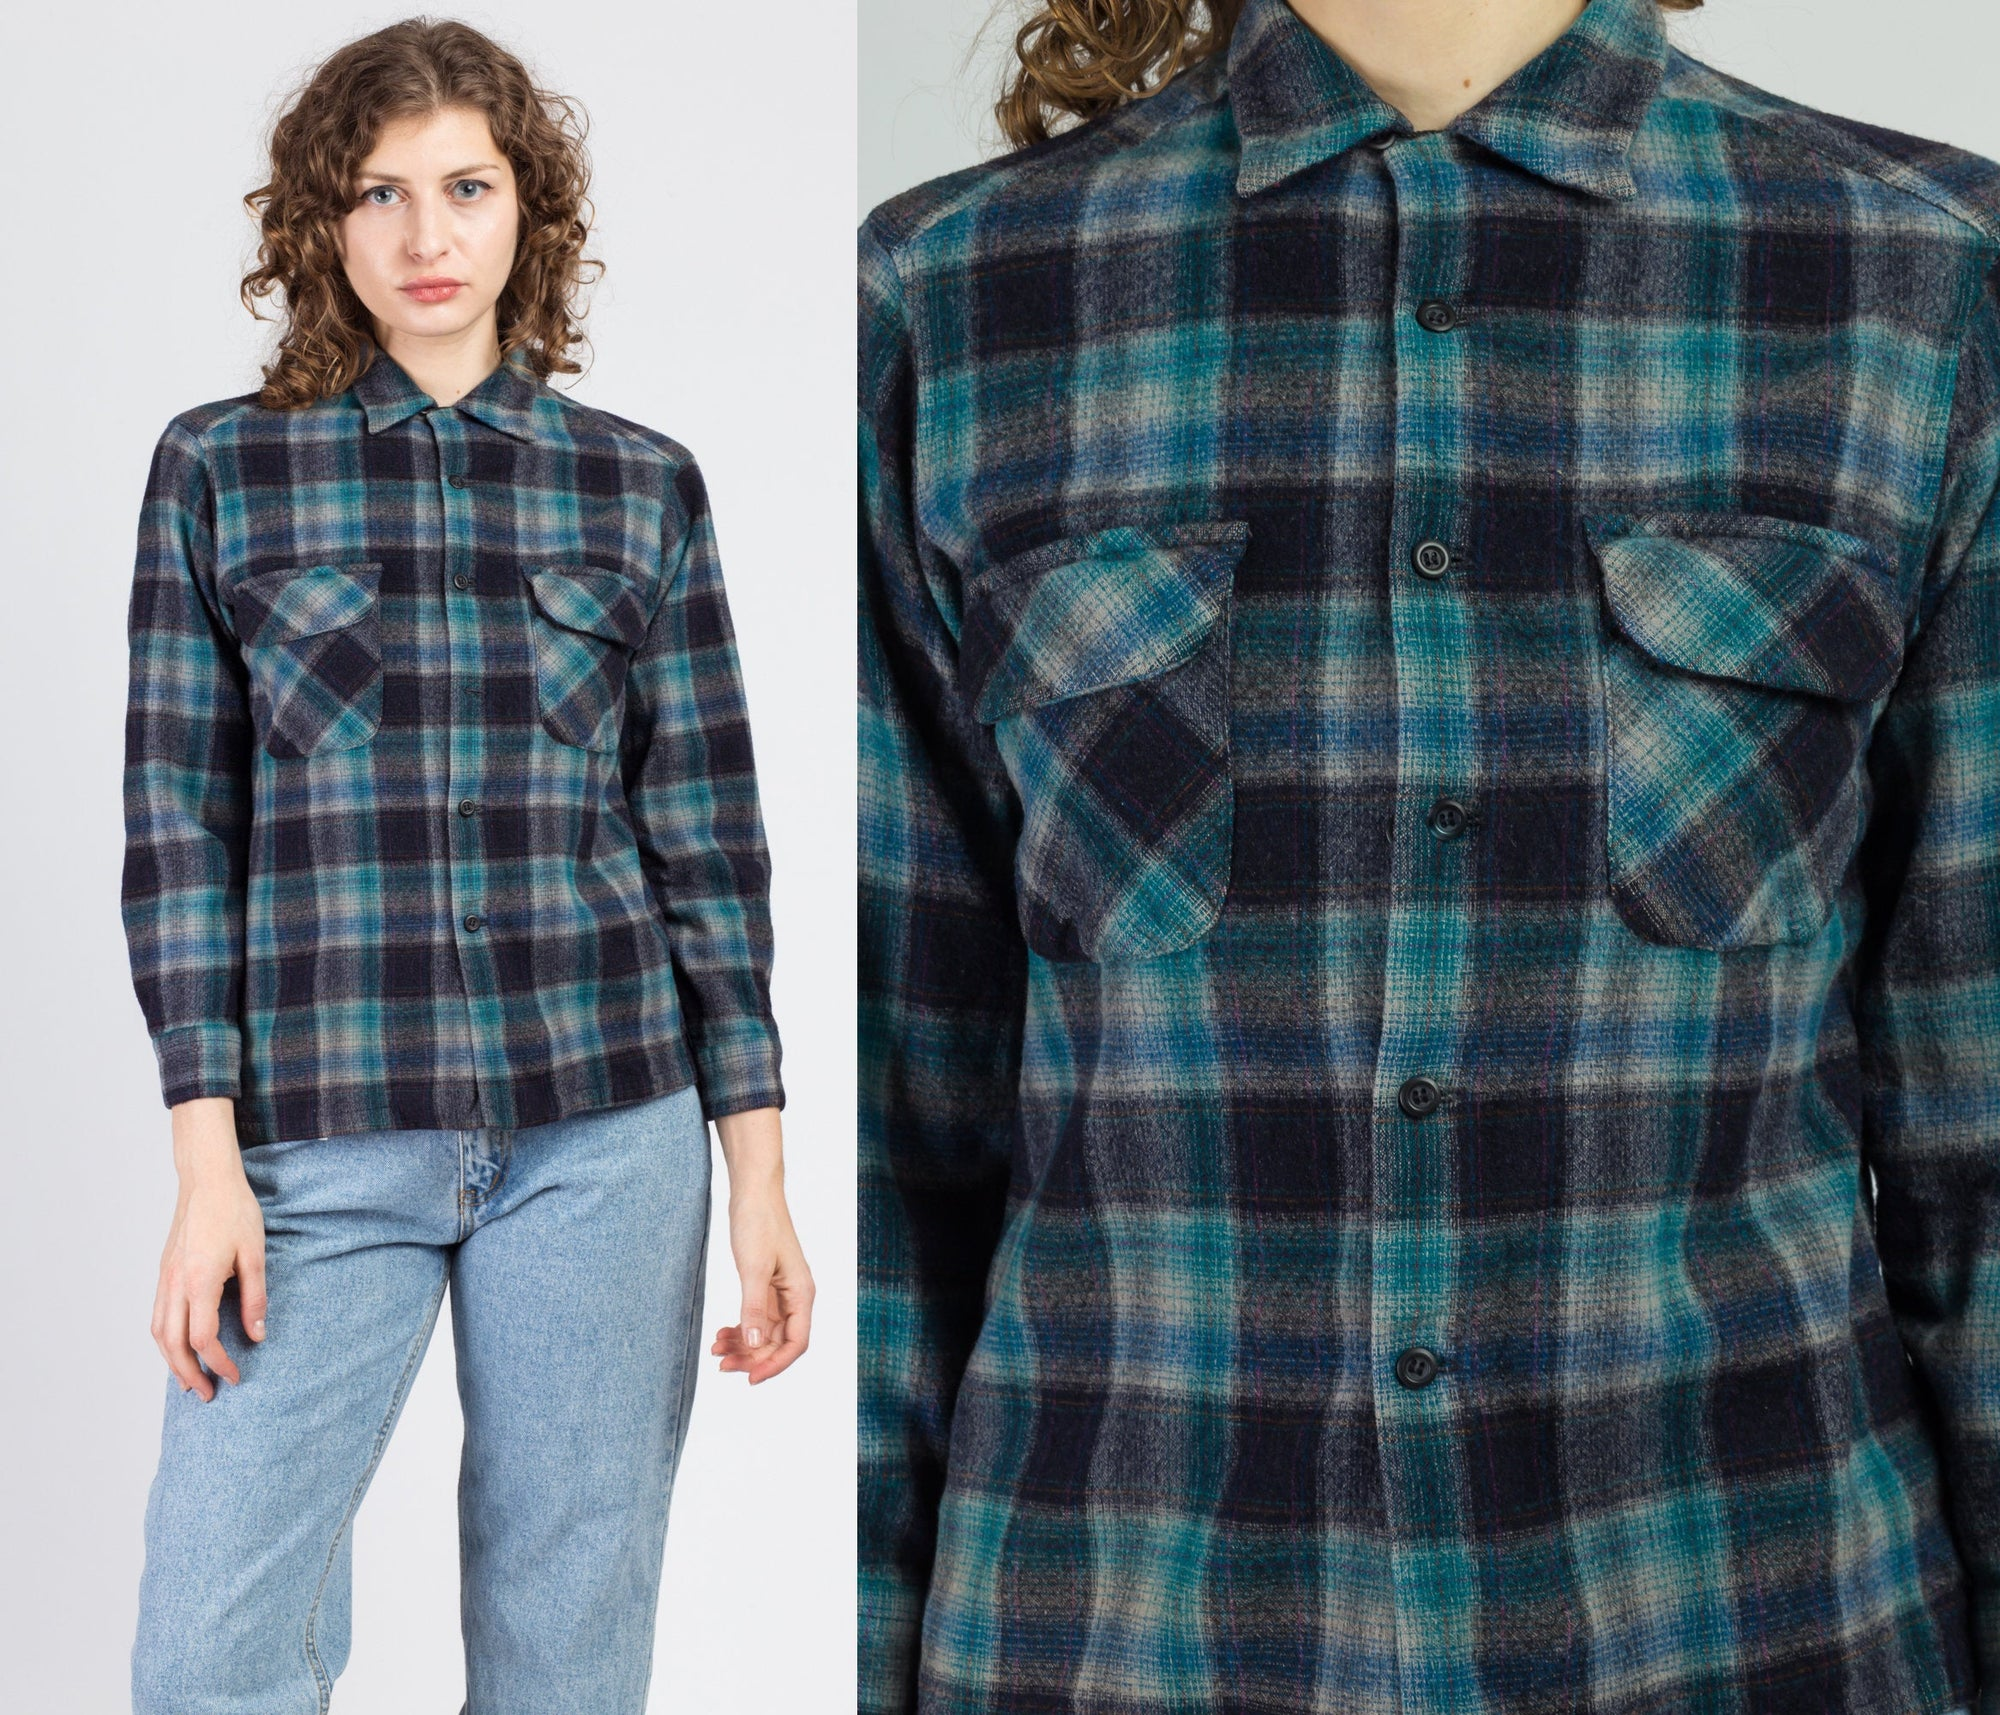 Vintage Blue Pendleton Plaid Wool Shirt - Extra Small